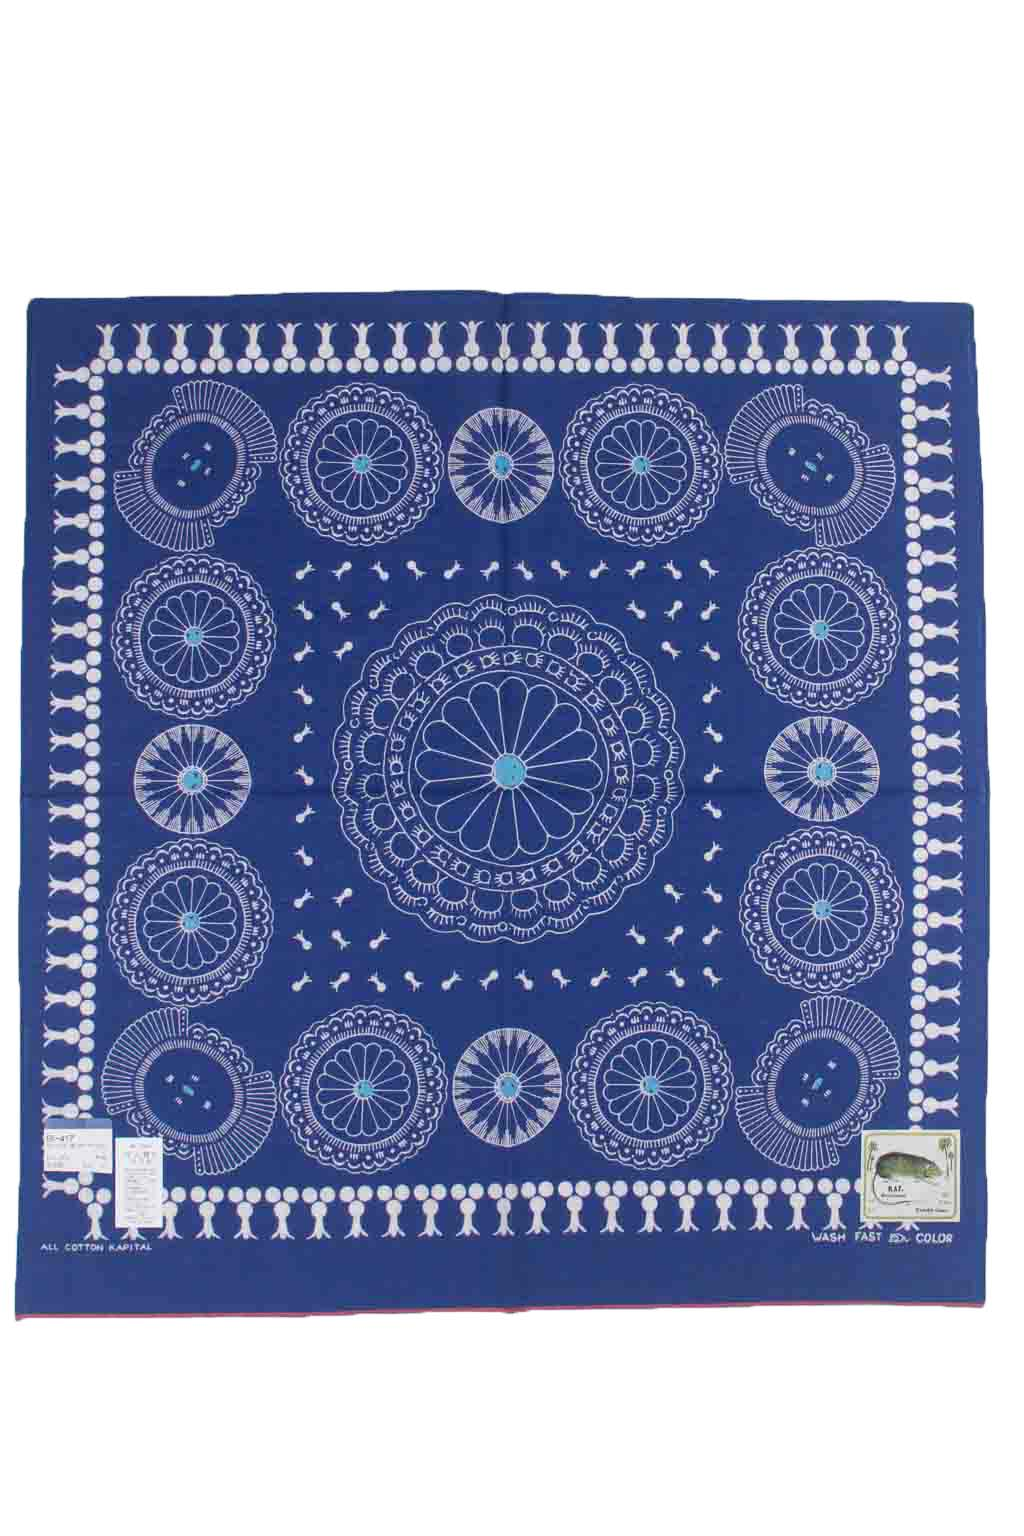 Fastcolor Selvedge Bandana - Concho- Purple Navy